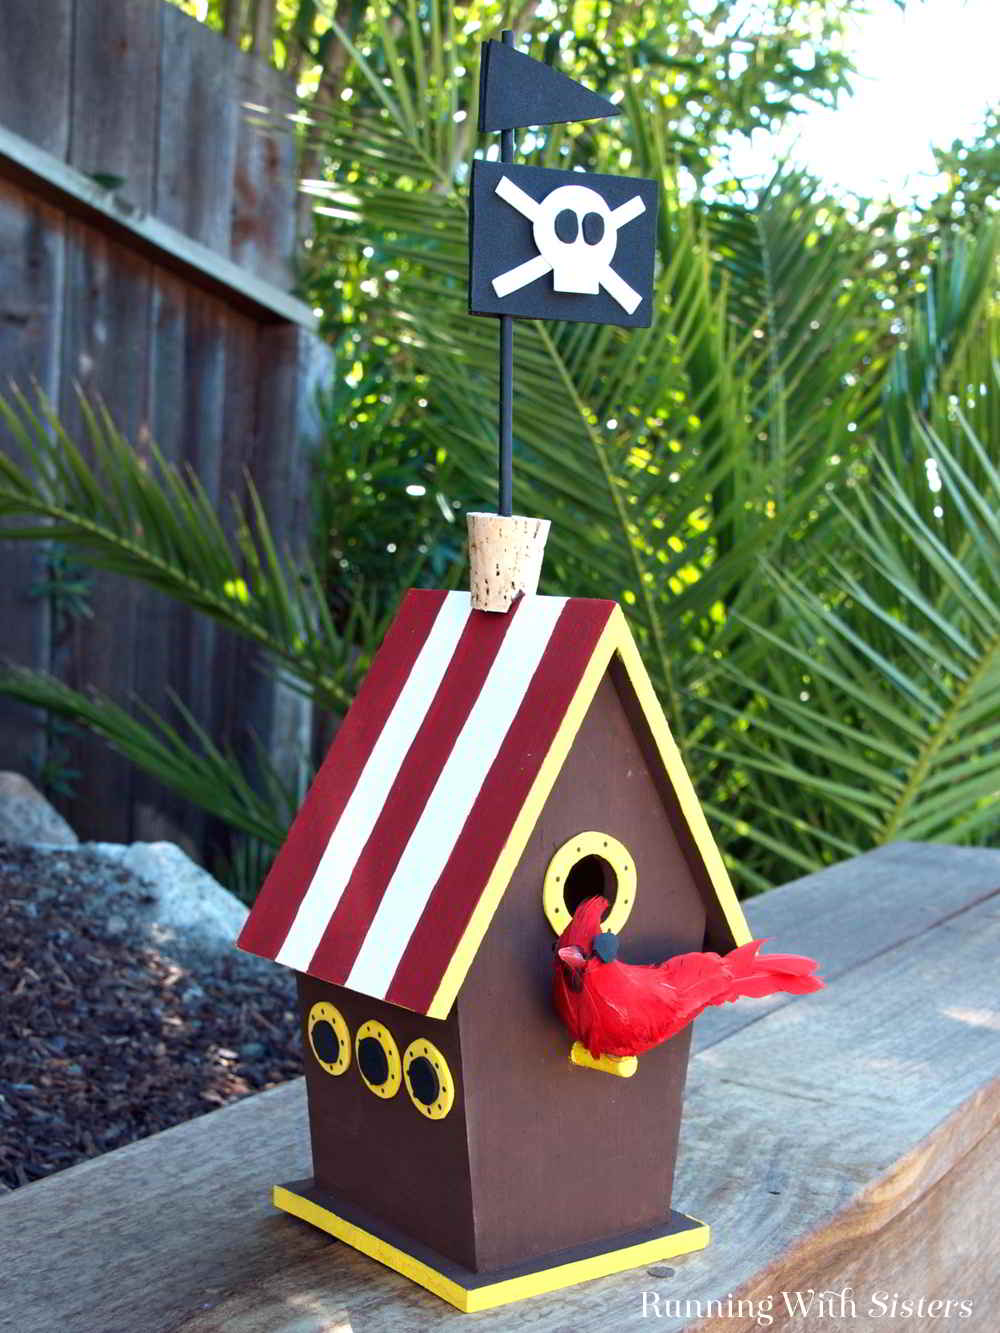 Turn a wooden birdhouse into a Pirate Ship Birdhouse cool enough for Jack Sparrow. In this fun kid craft we'll tell you how!